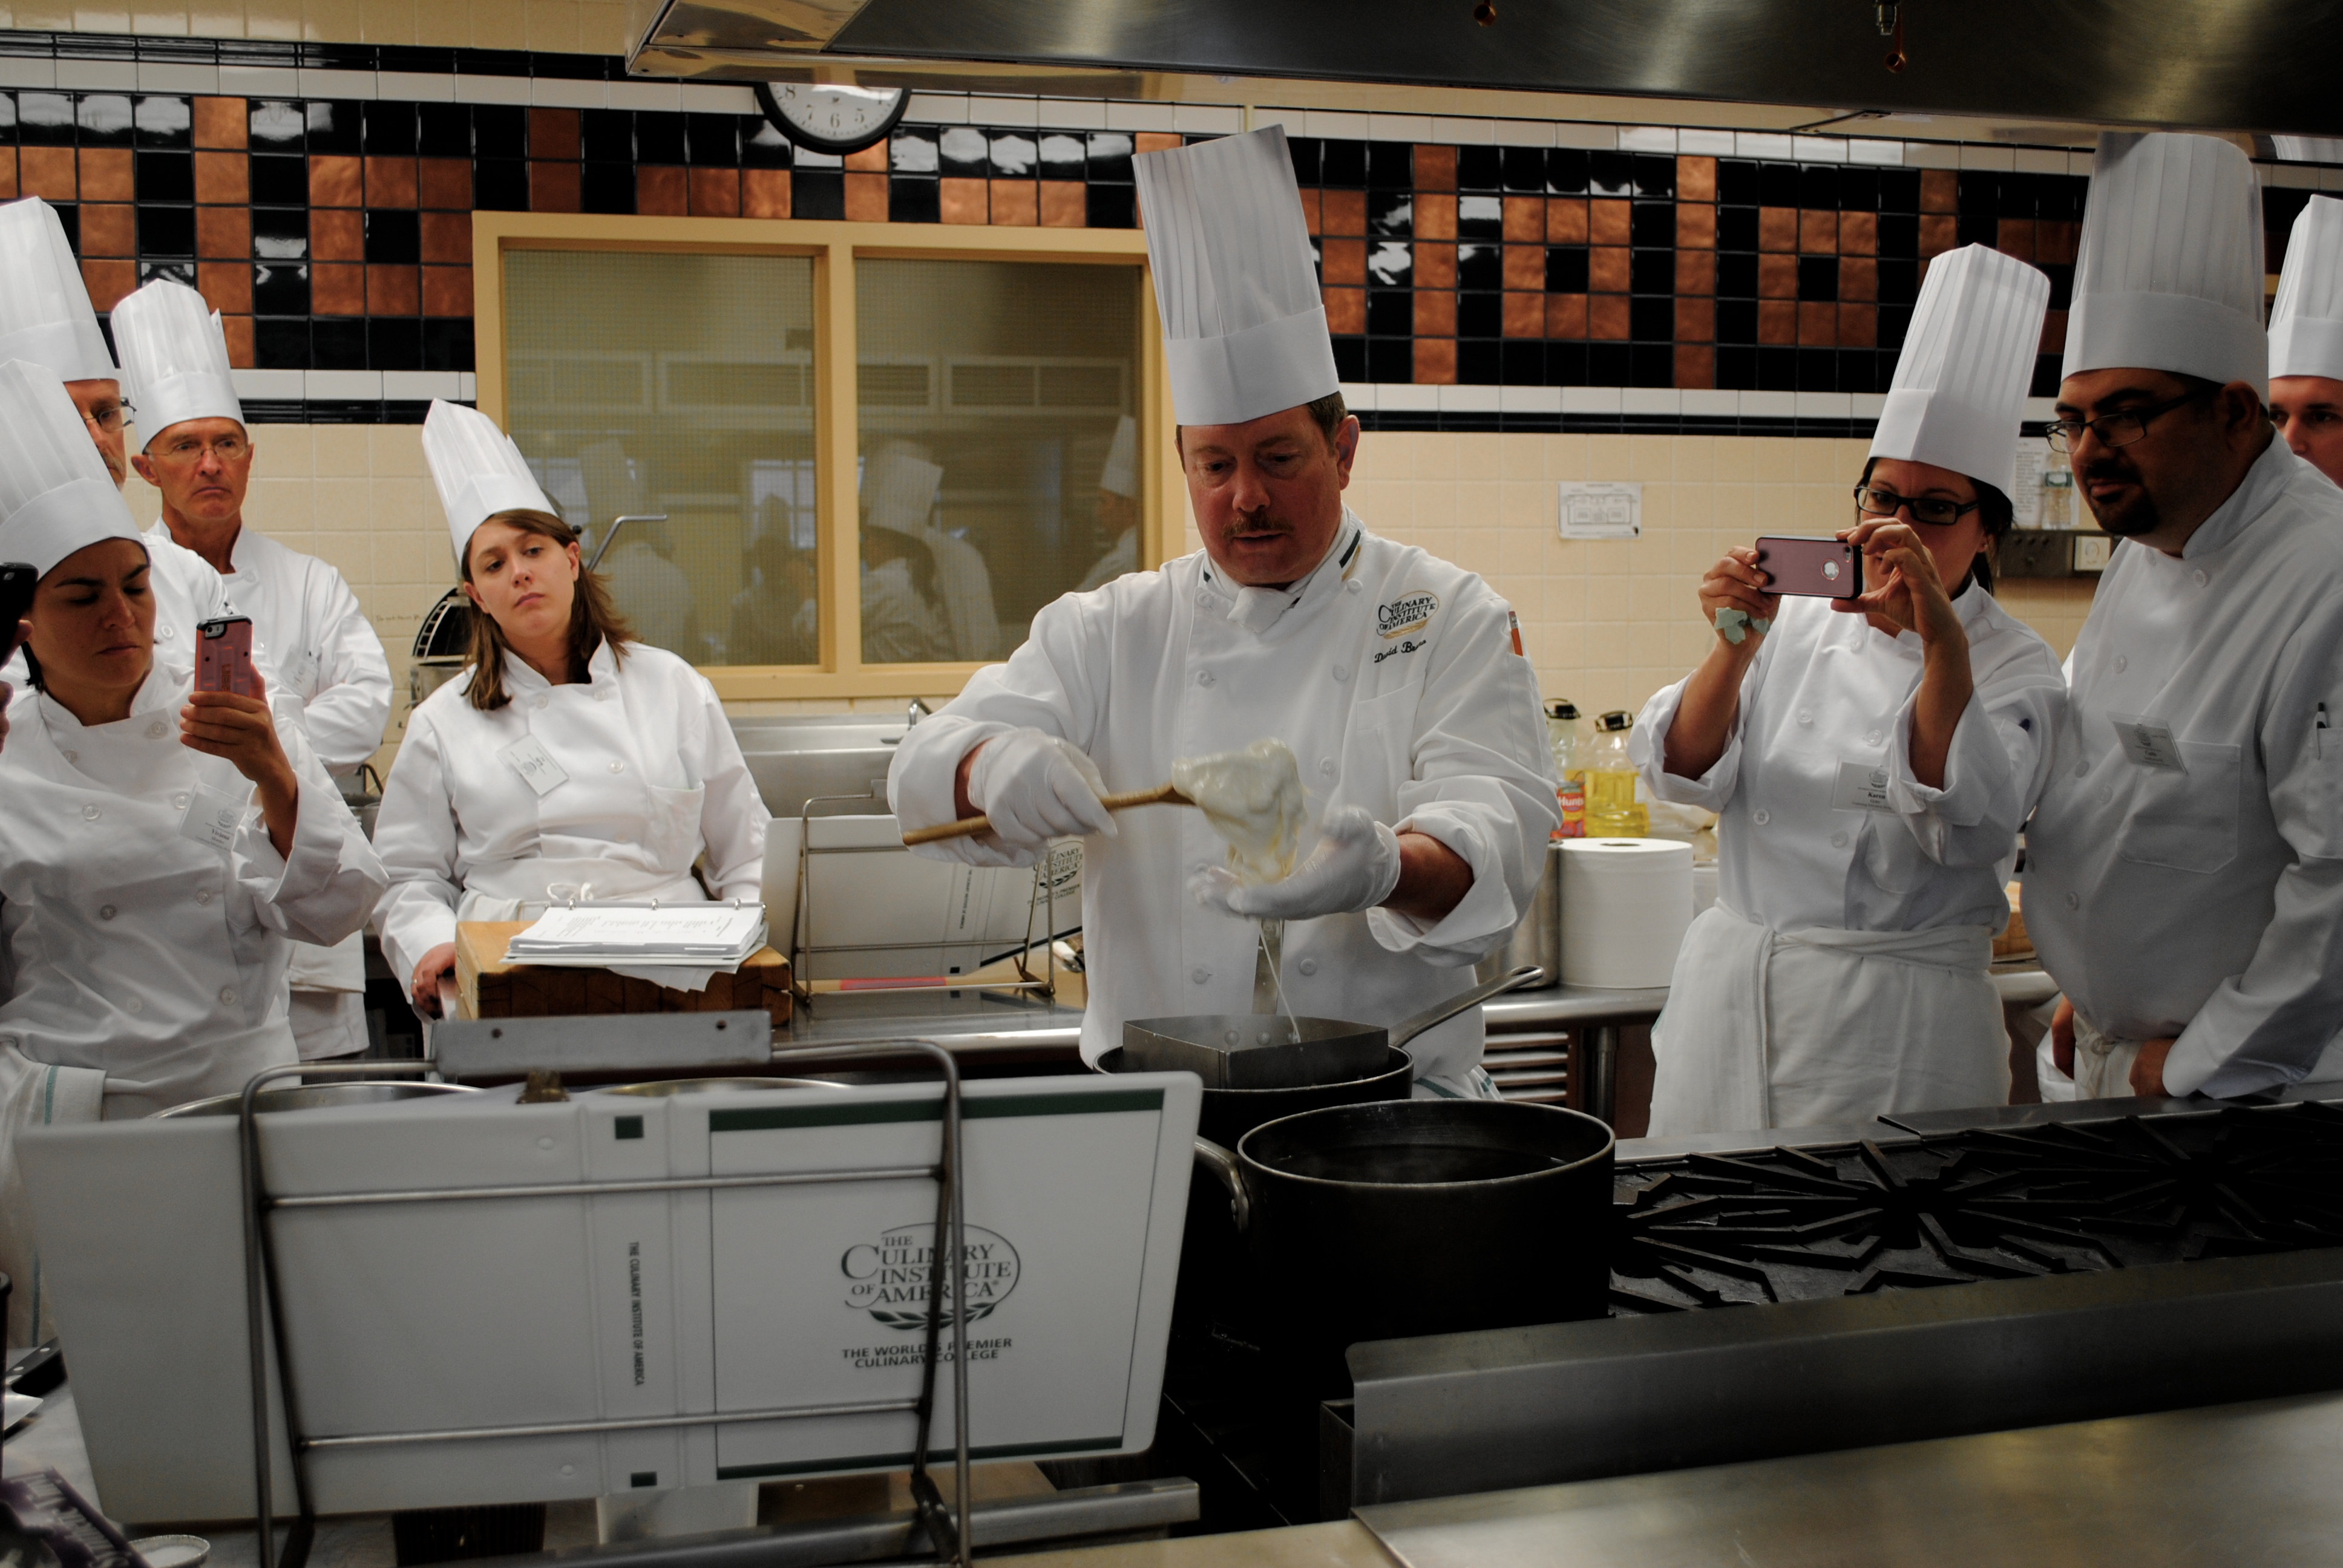 The Culinary Institute of America: Lessons on Cooking and Life | The ...